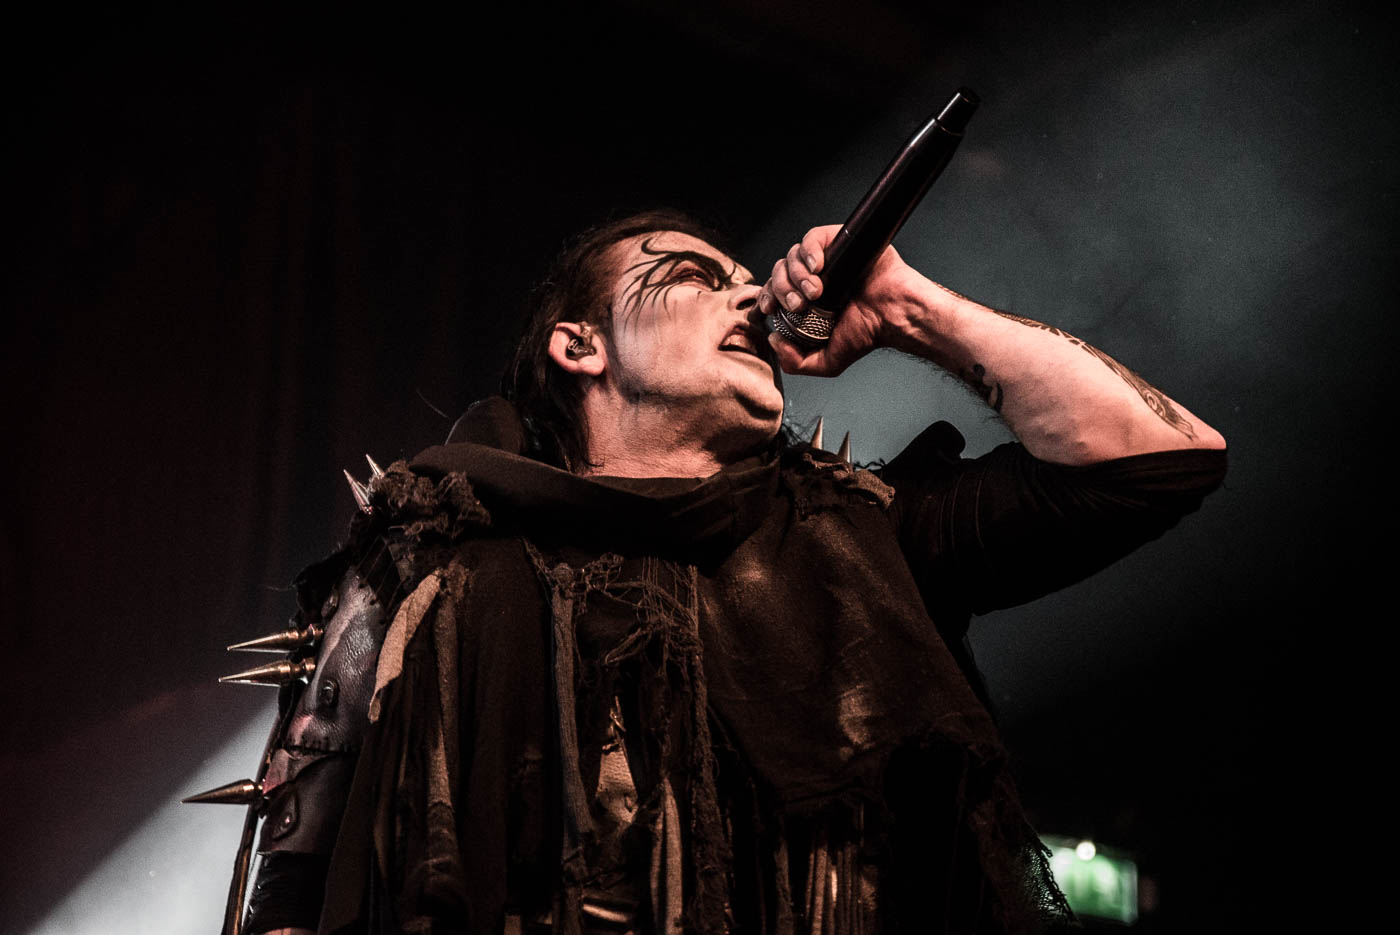 2018004_Cradle_of_Filth@Vulkan_Willy_Larsen_Photography_DH (3 of 35)